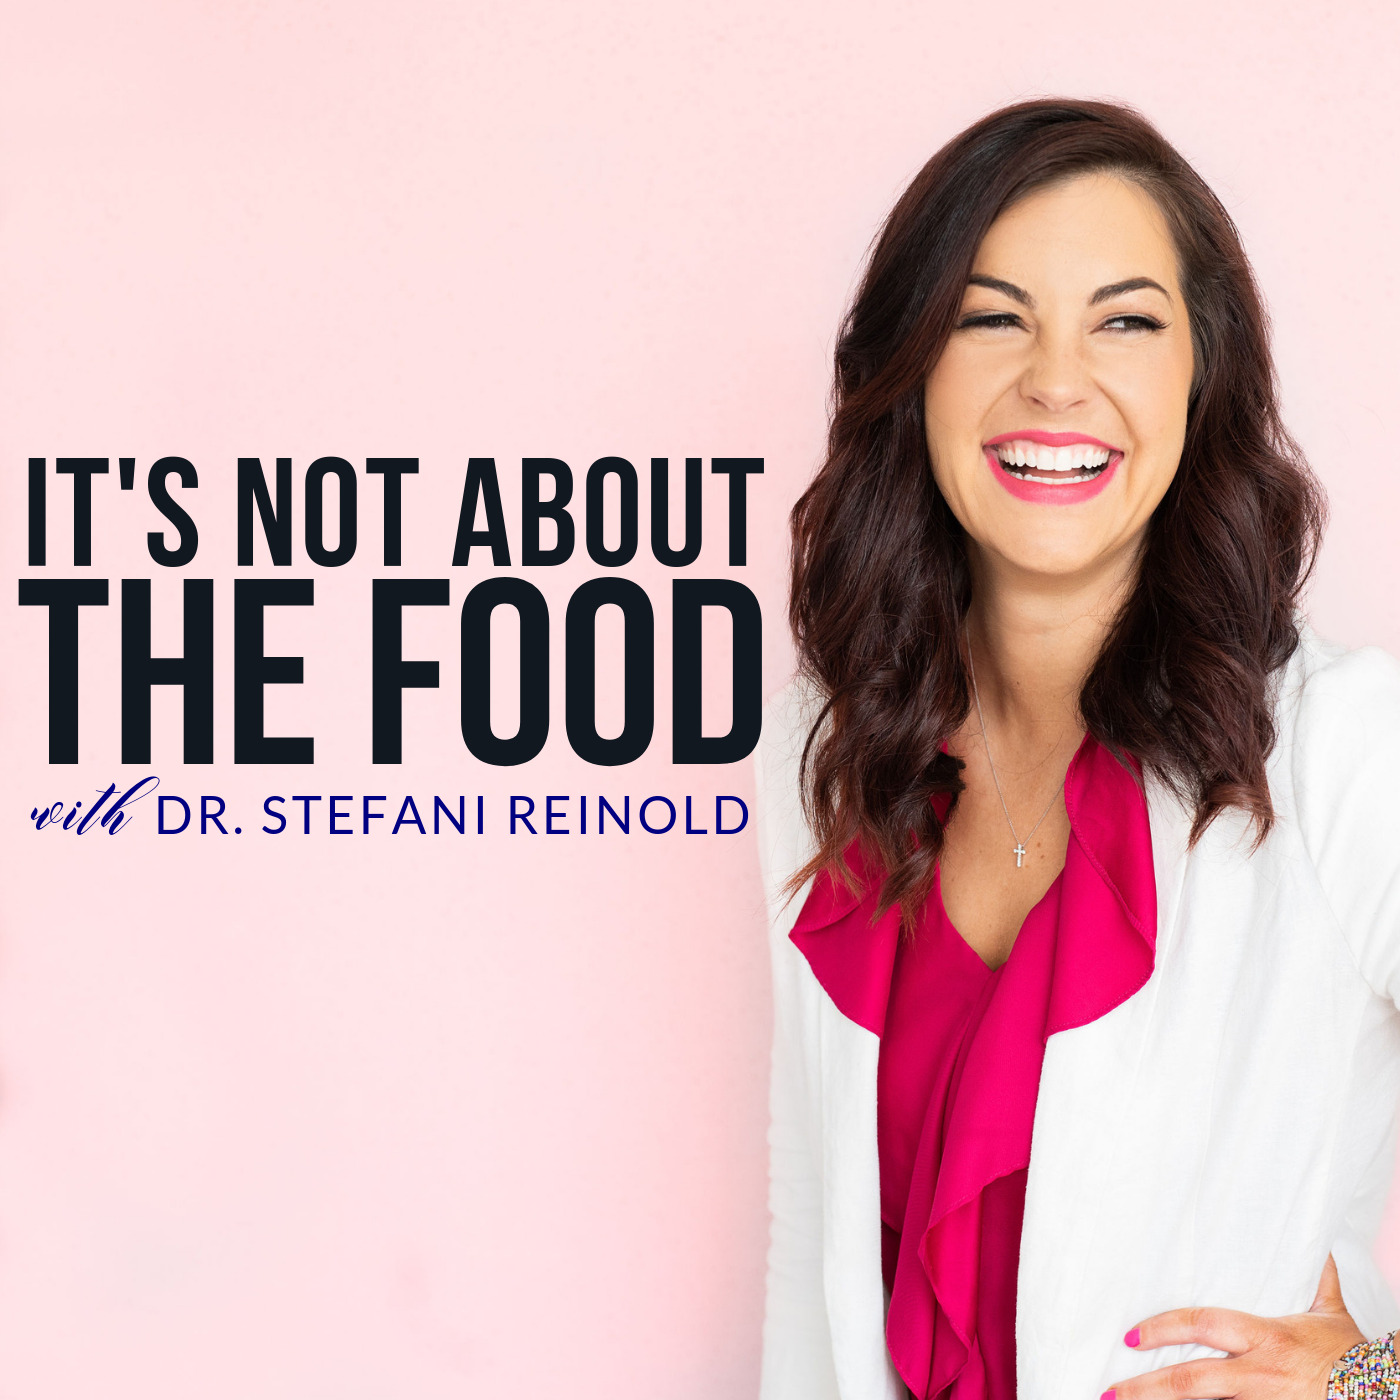 It's Not About the Food: Intuitive Eating, Anti-Diet, Body Positivity with Dr. Stefani Reinold show art